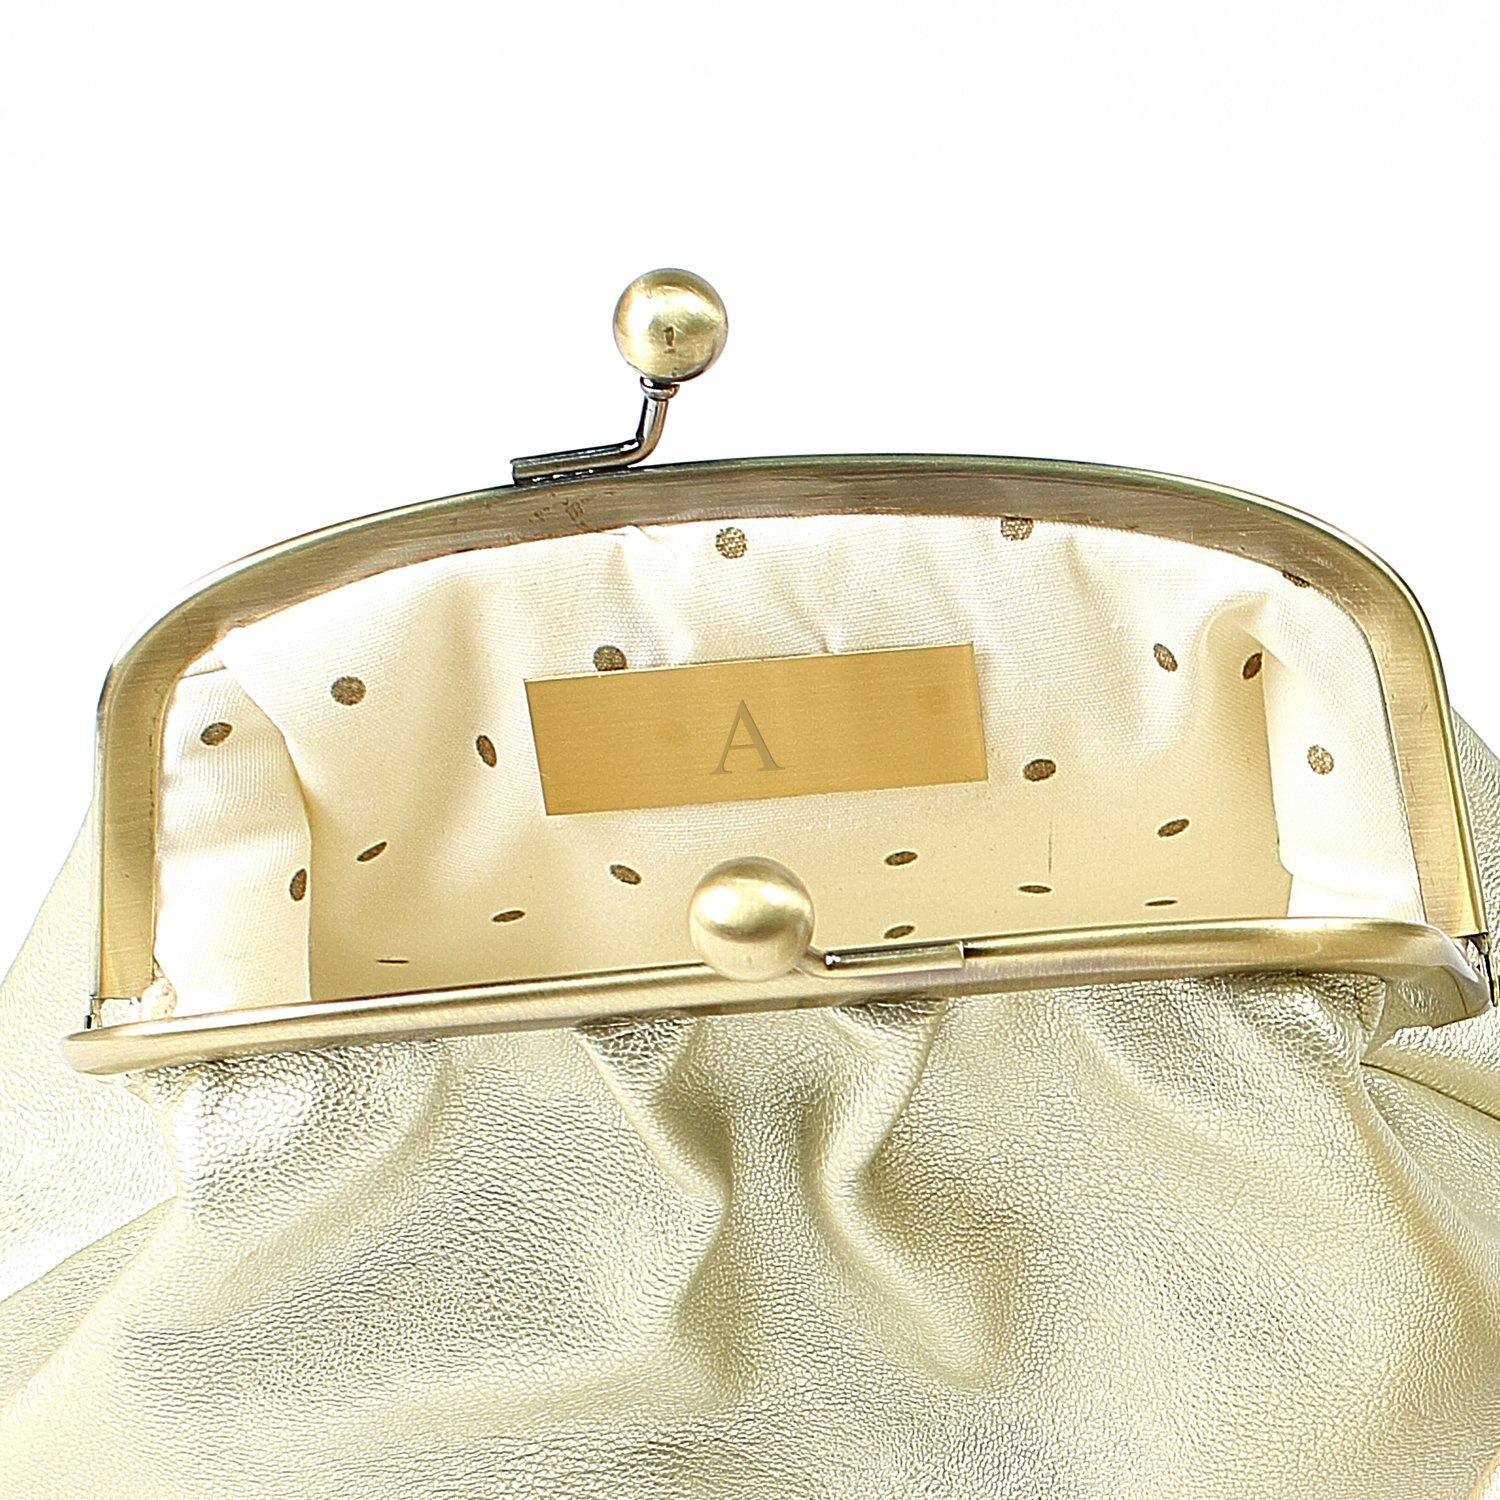 Amazon.com: Cathys Concepts Personalized Vintage Clutch with Survival Kit, Gold, Letter M: Arts, Crafts & Sewing